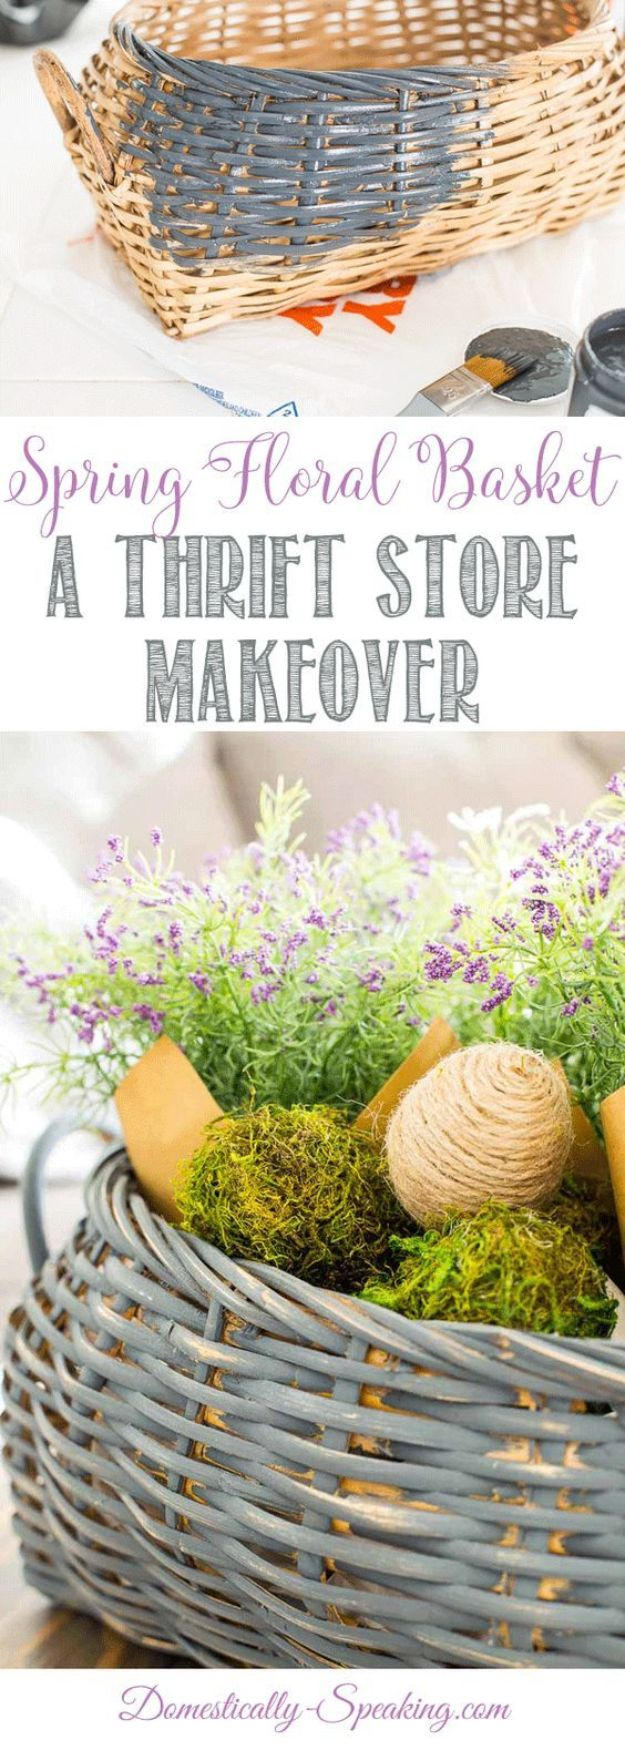 Thrift Store DIY Makeovers - Floral Basket Thrift Store Makeover - Decor and Furniture With Upcycling Projects and Tutorials - Room Decor Ideas on A Budget - Crafts and Decor to Make and Sell - Before and After Photos - Farmhouse, Outdoor, Bedroom, Kitchen, Living Room and Dining Room Furniture http://diyjoy.com/thrift-store-makeovers